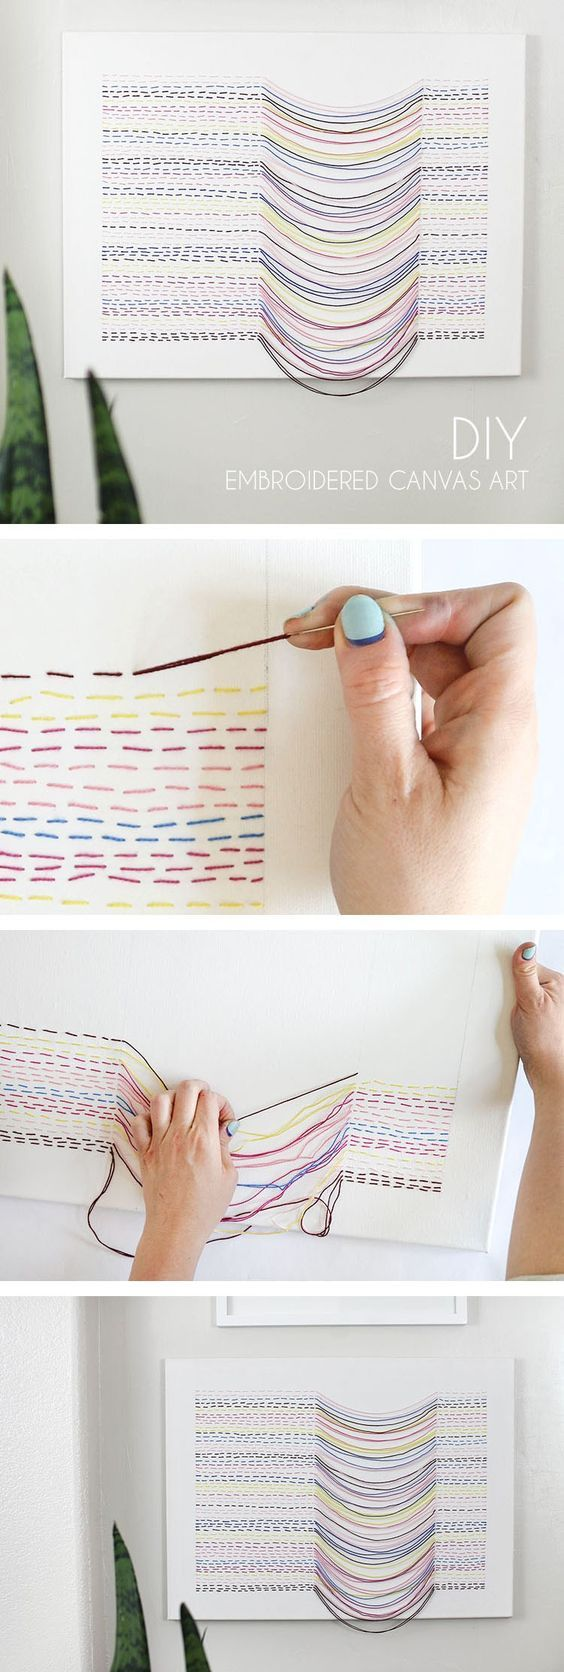 Make your own DIY embroidered canvas wall art. This art piece is simple to make …